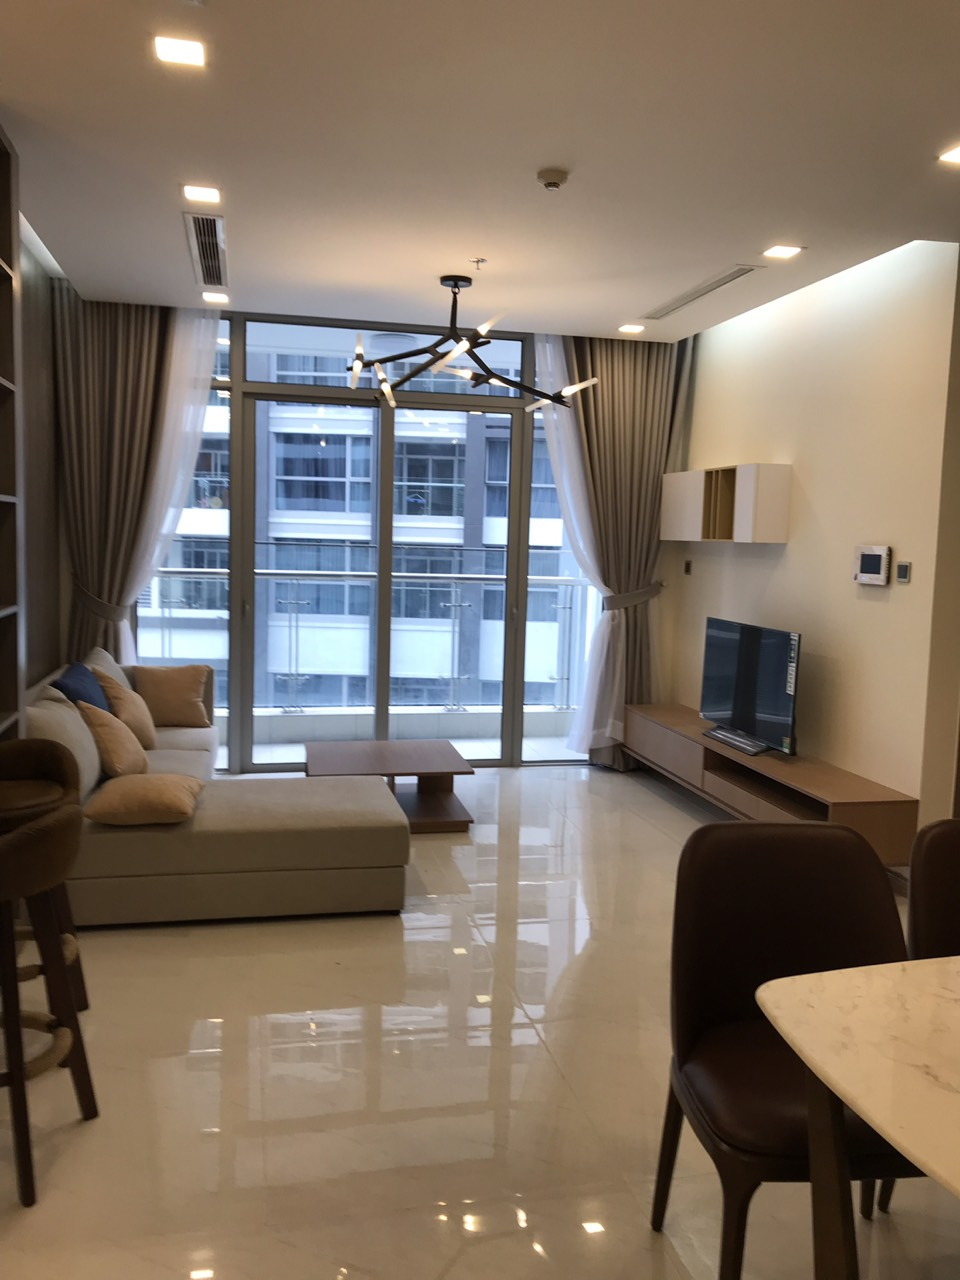 2 Bedrooms Apartment For Rent In Vinhomes Central Park